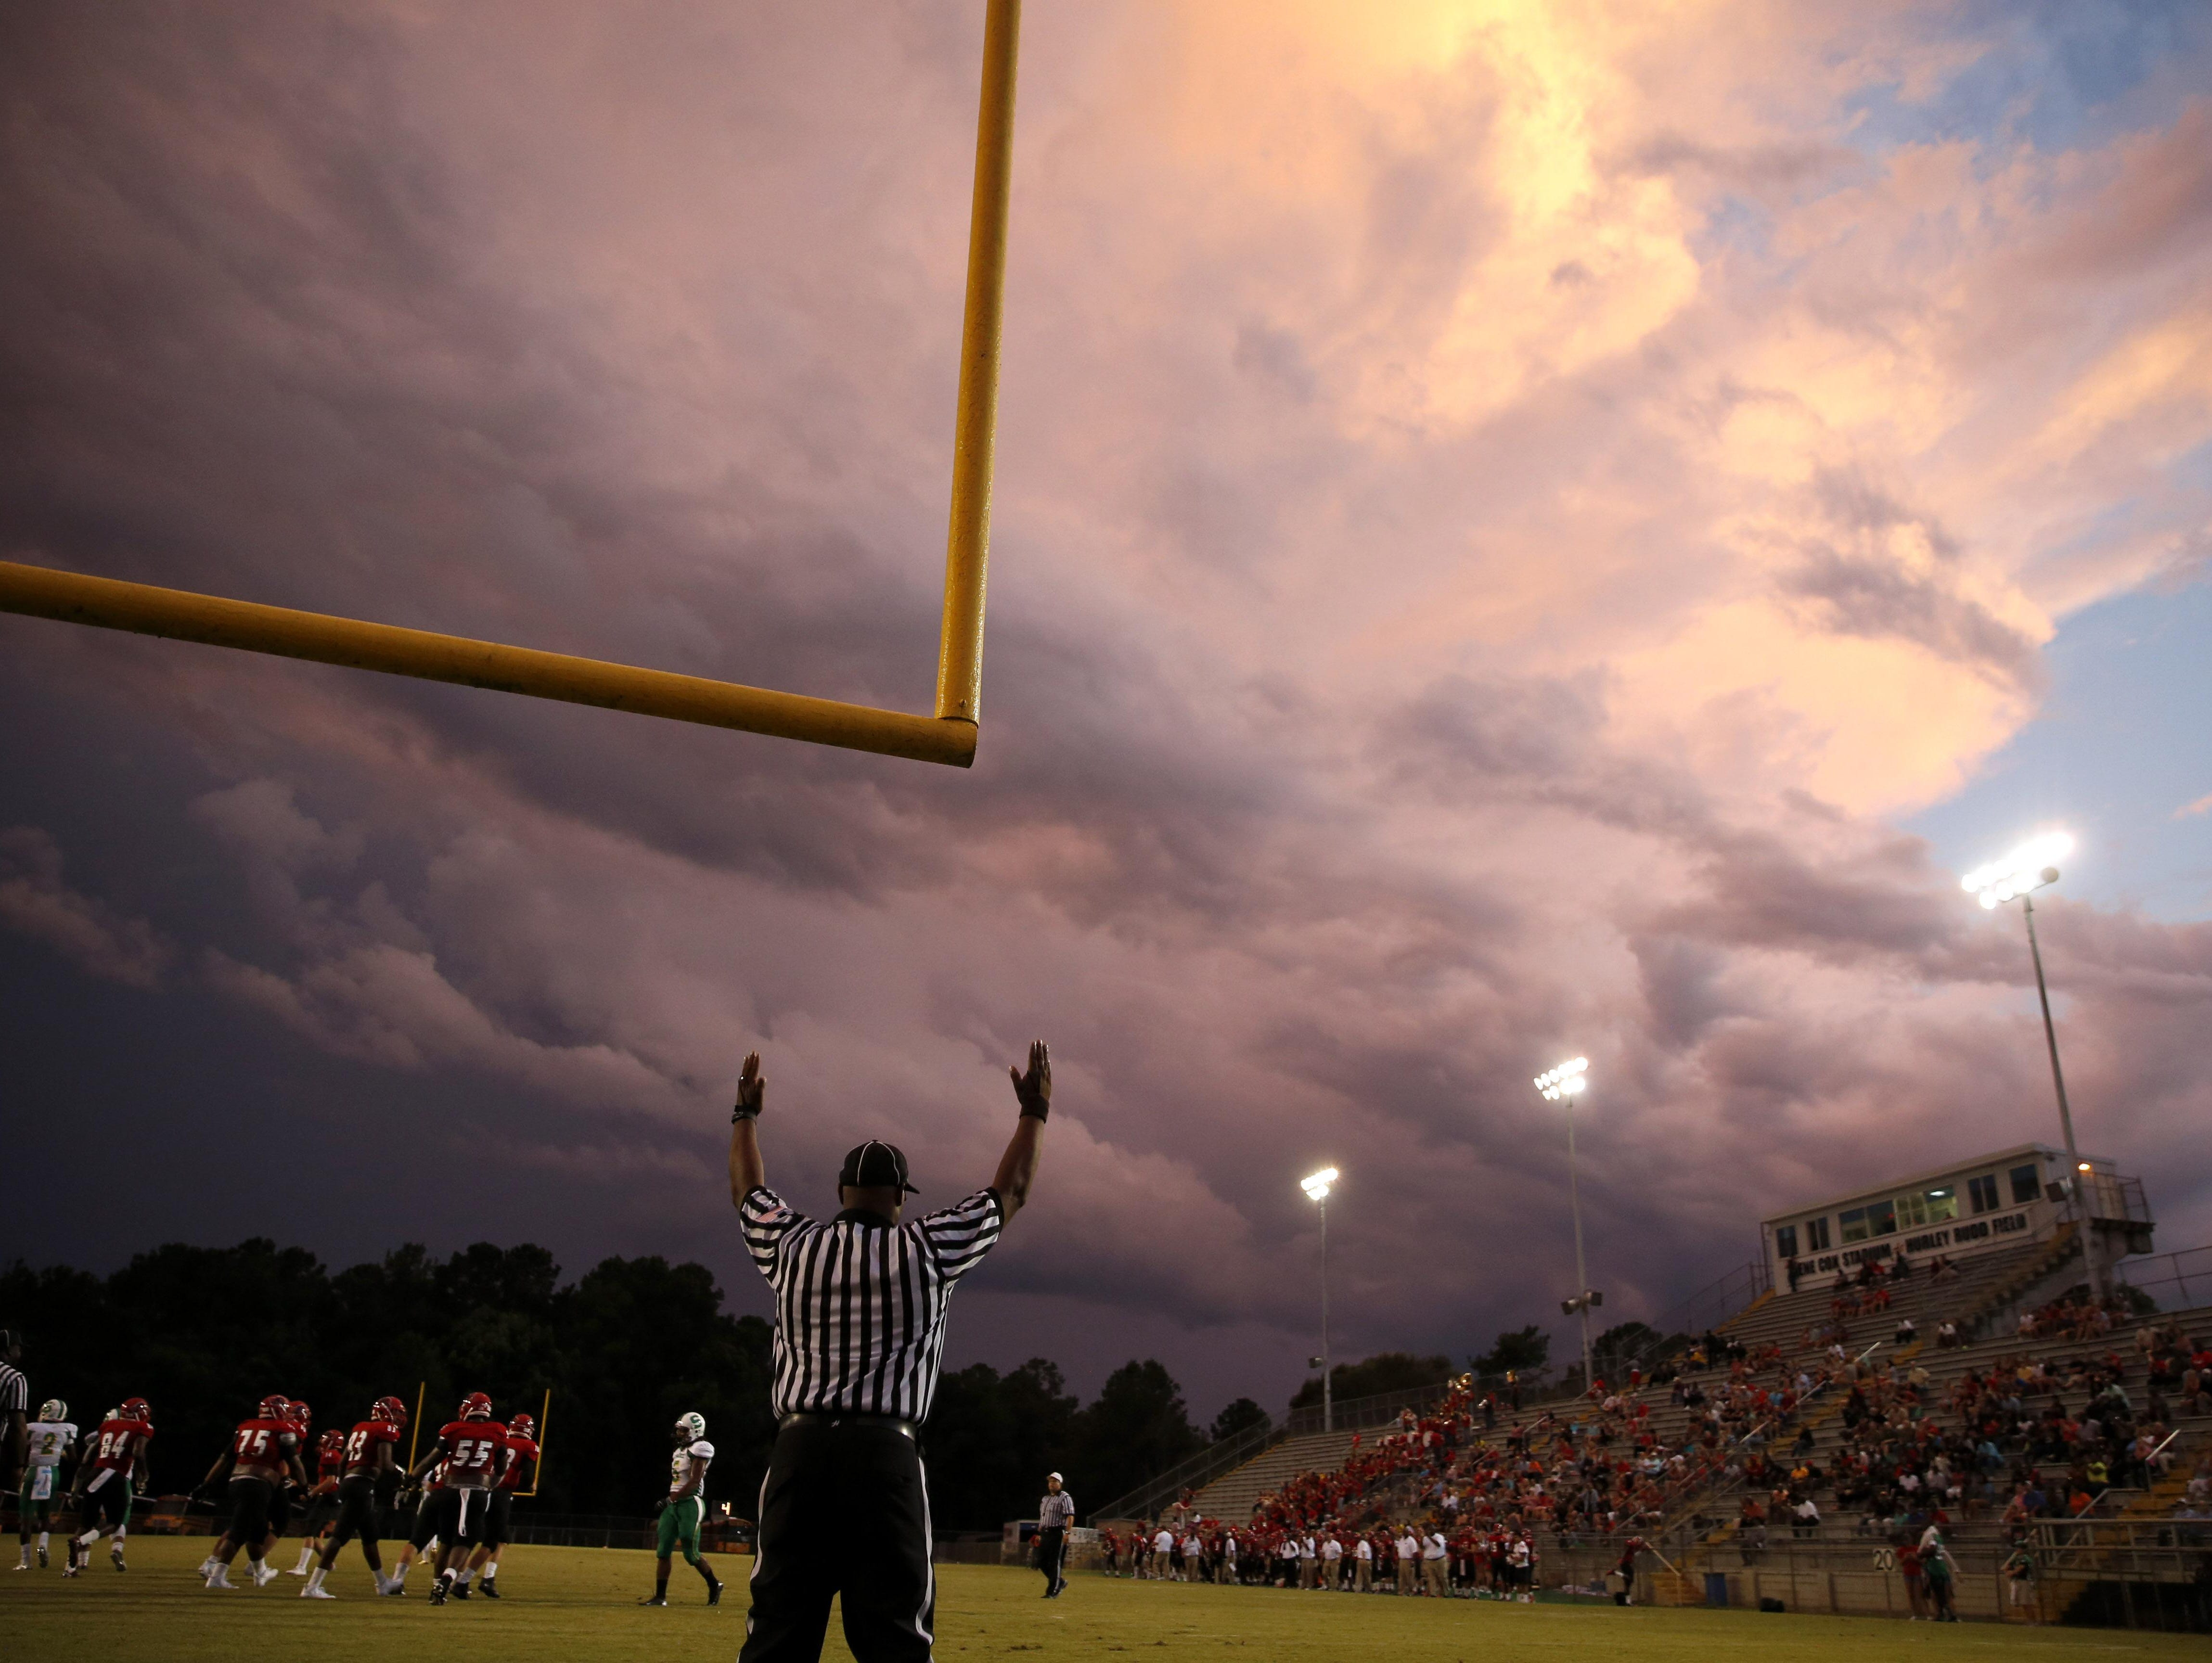 The kick is good by Jack Driggers for an extra point by Leon against Suwannee at Gene Cox Stadium.